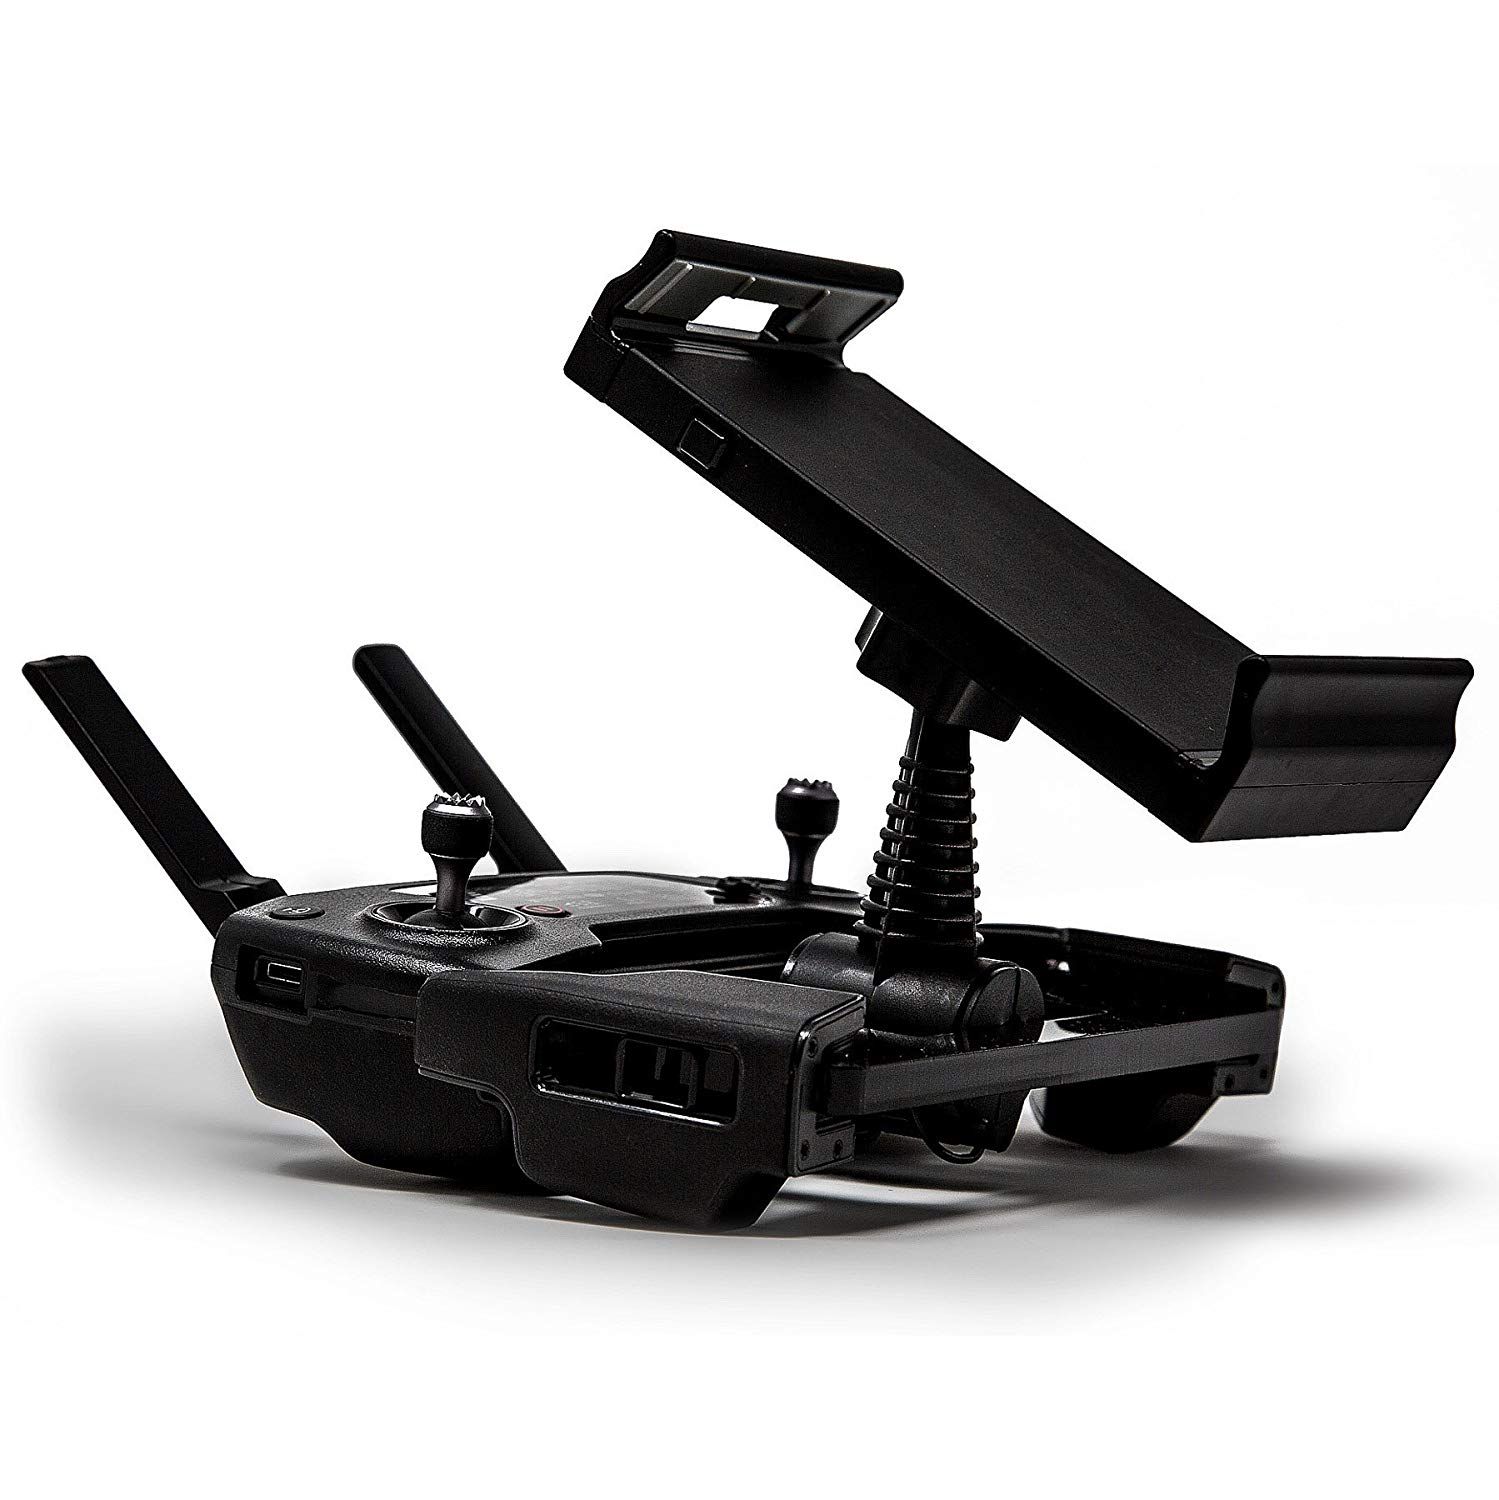 Ultimaxx Upgraded DJI Mavic Pr